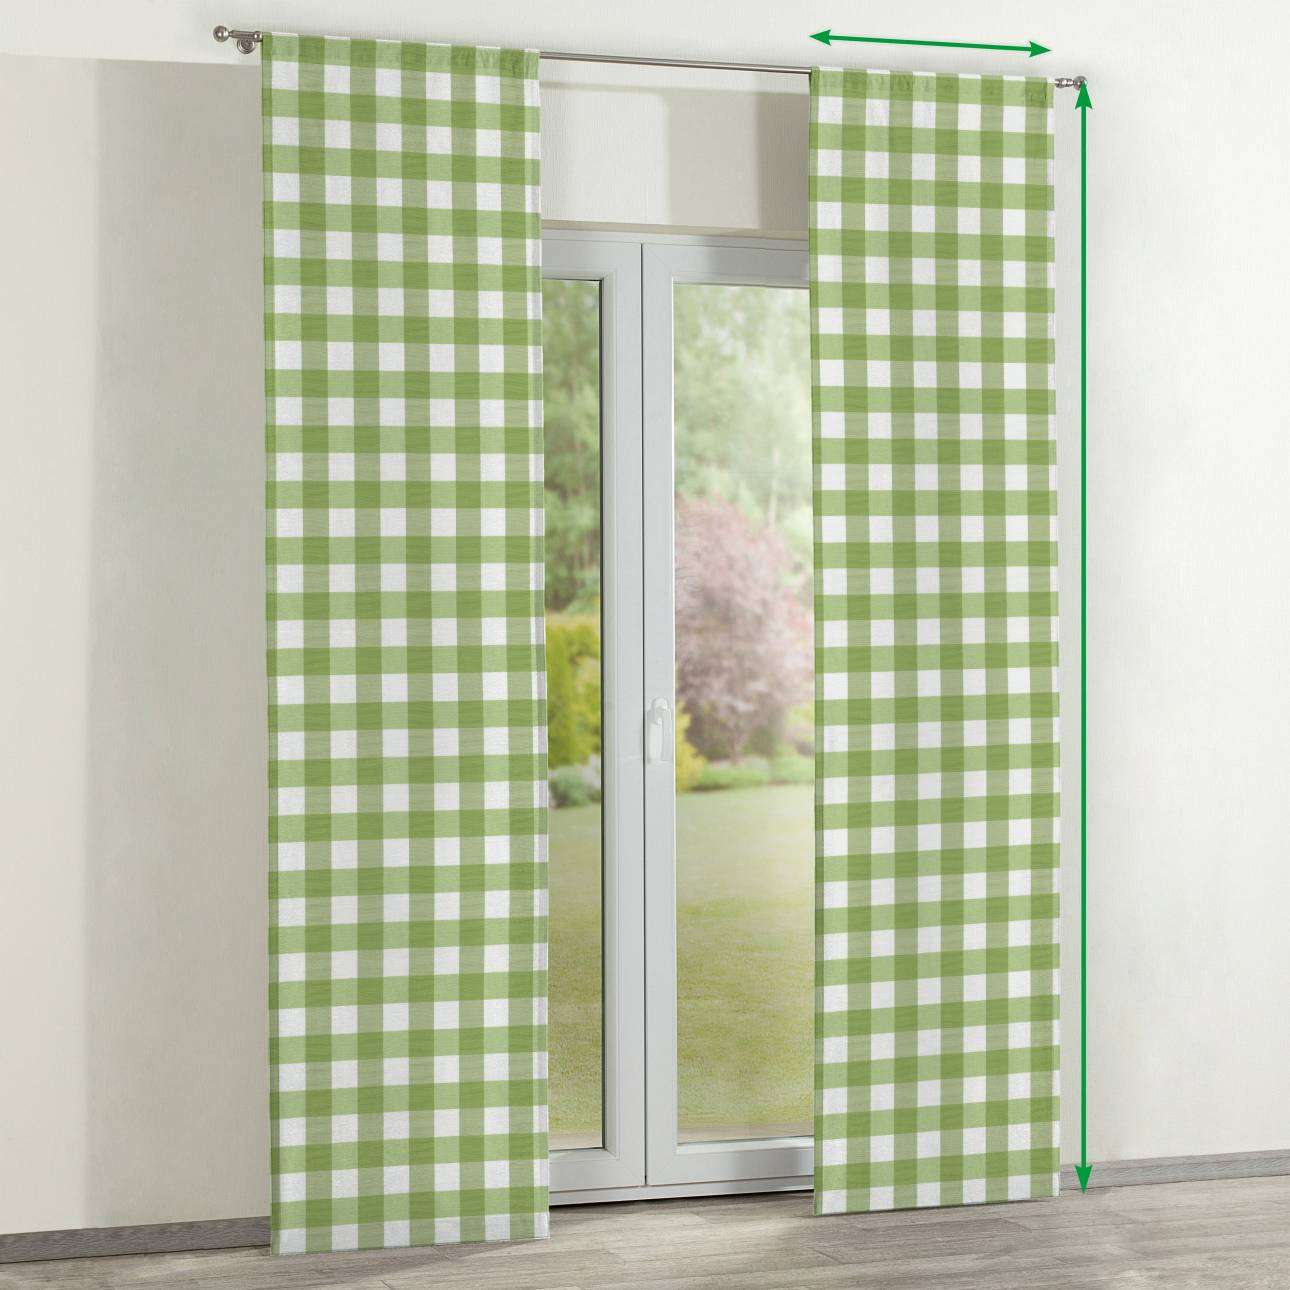 Slot panel curtains – Set of 2 in collection Quadro, fabric: 136-36